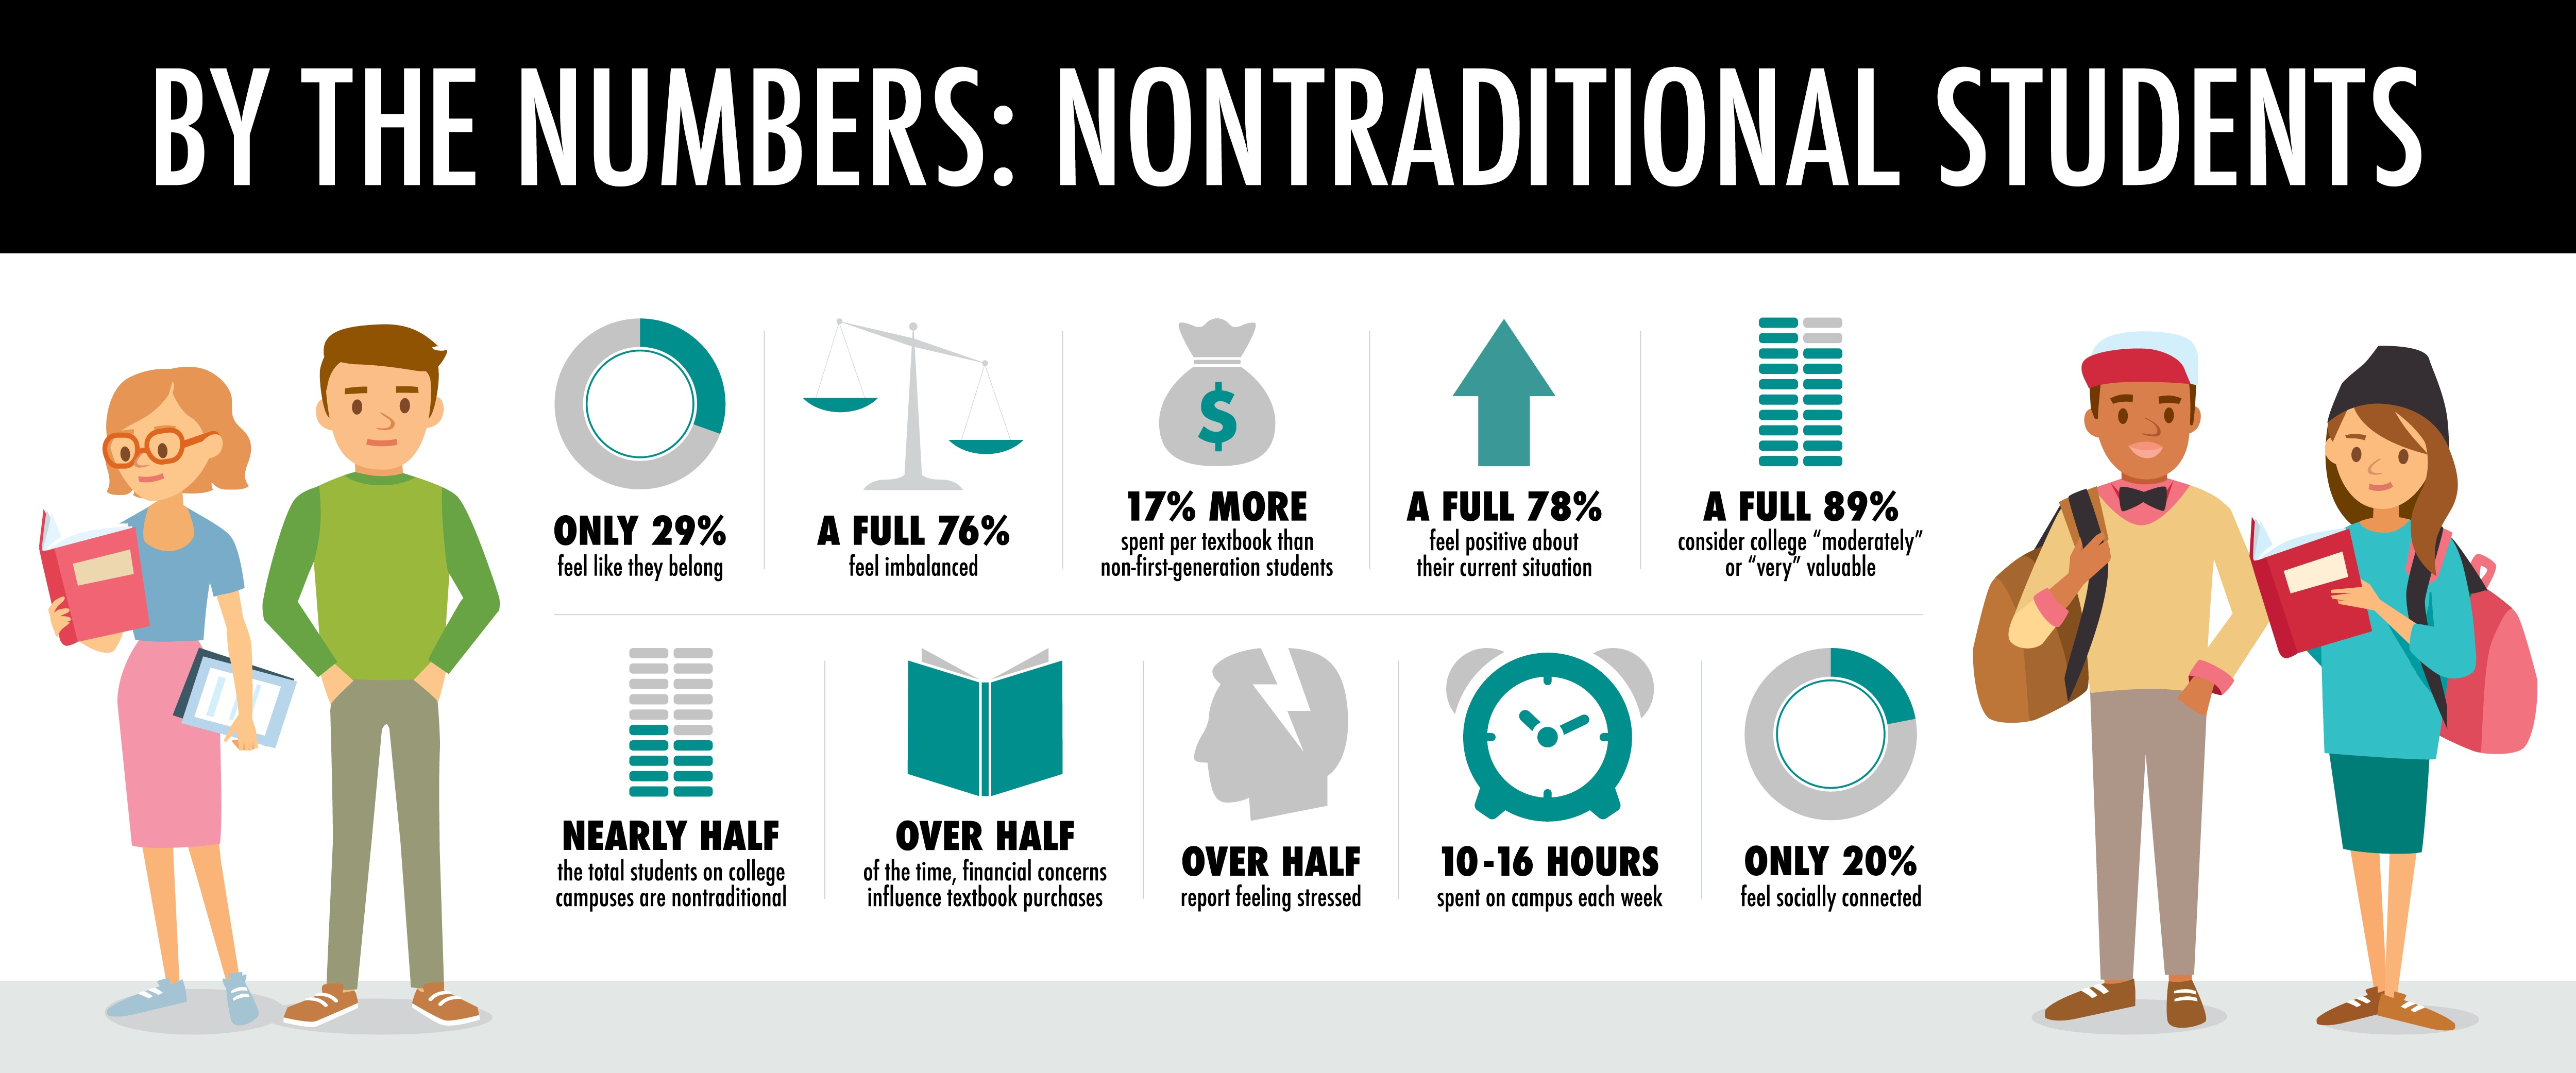 By The Numbers: Nontraditional Students